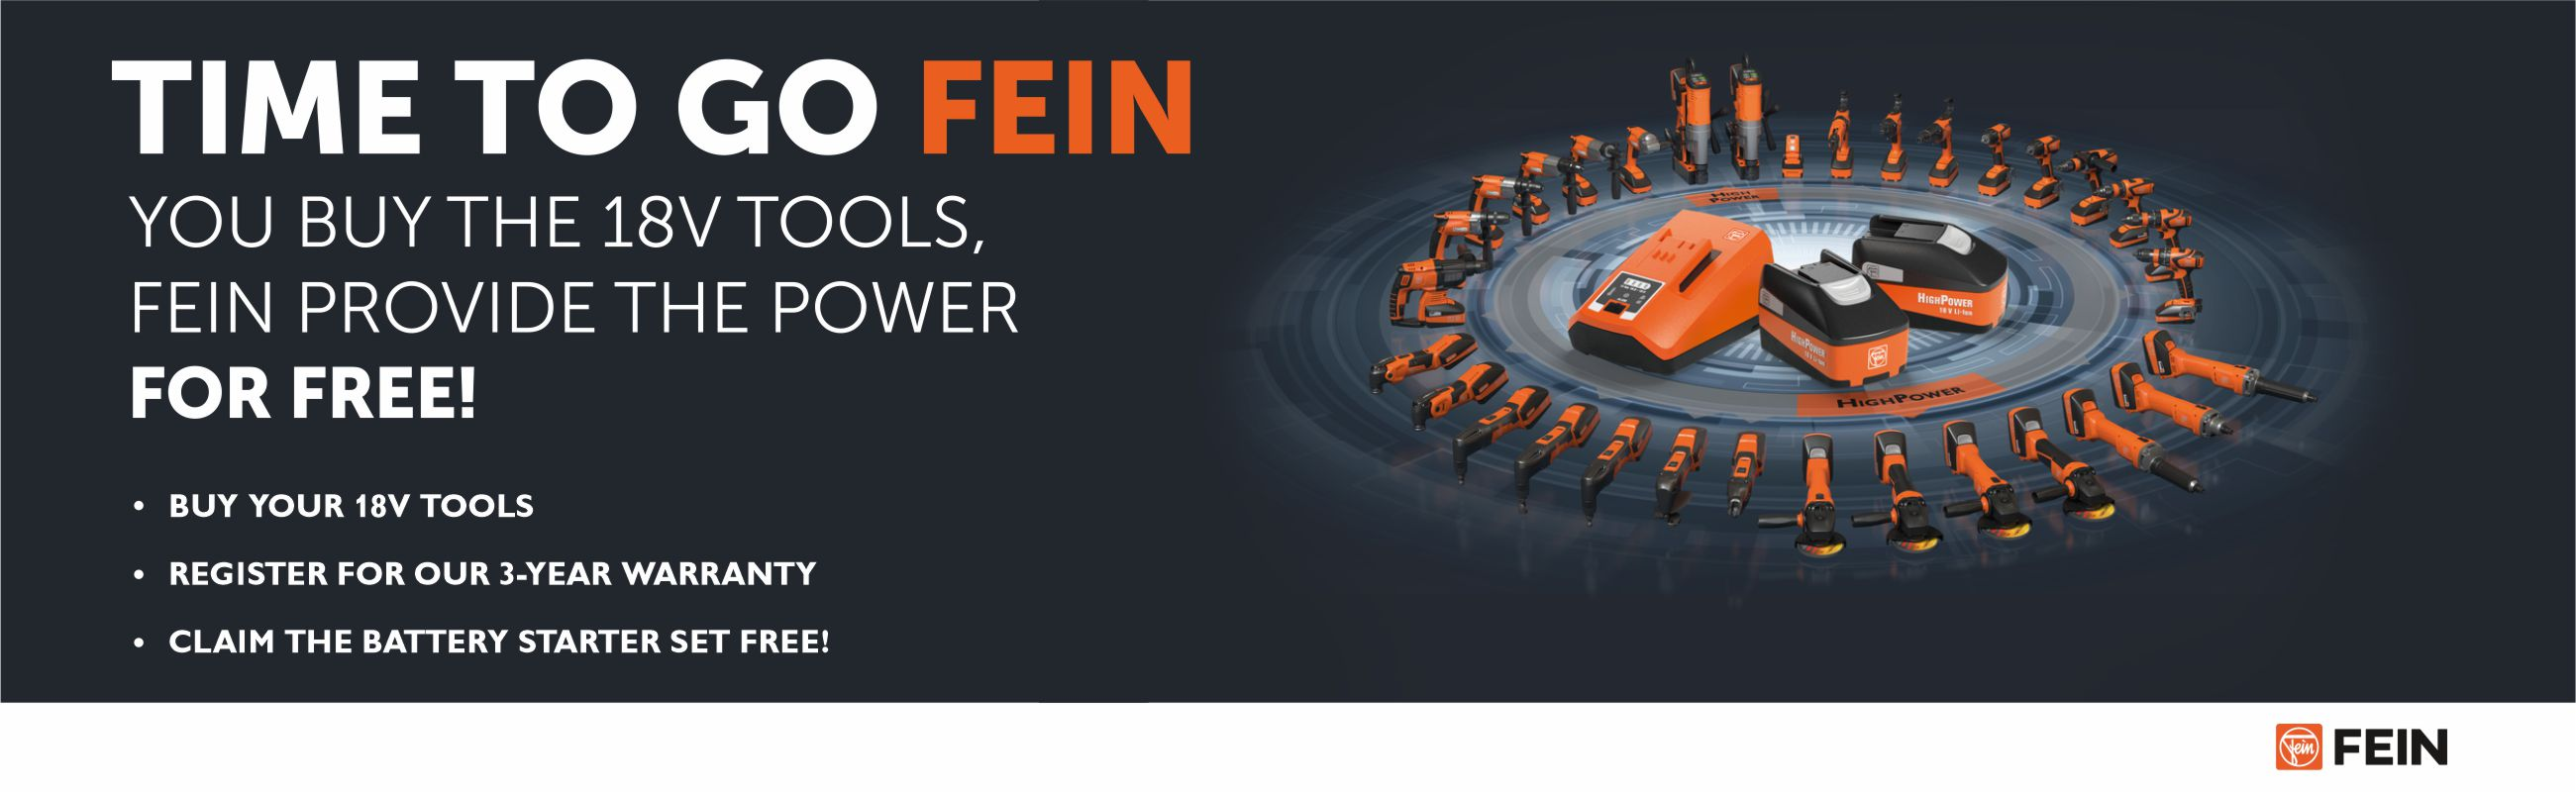 Fein Cordless Power Tools FREE Battery Pack Img